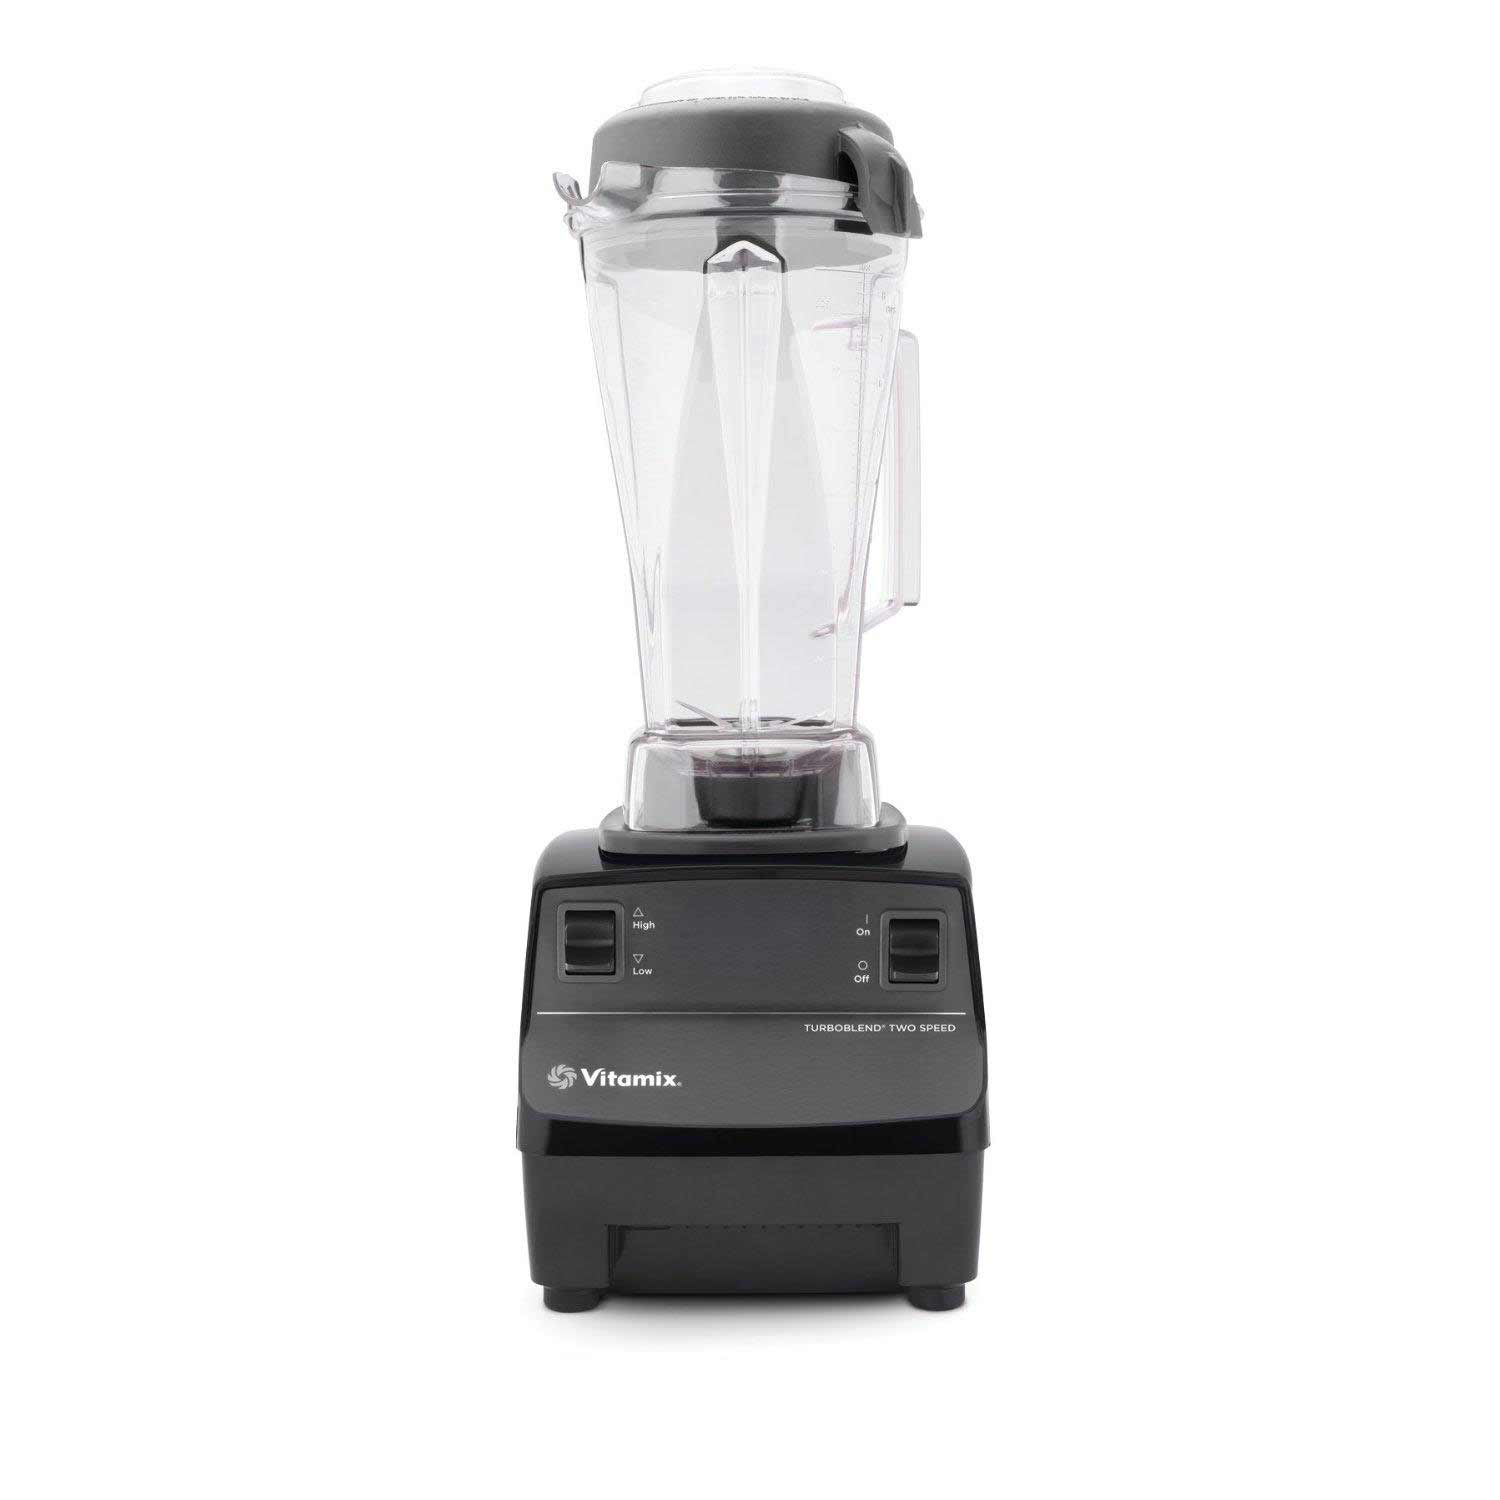 Vitamix TurboBlend best blender for crushing ice